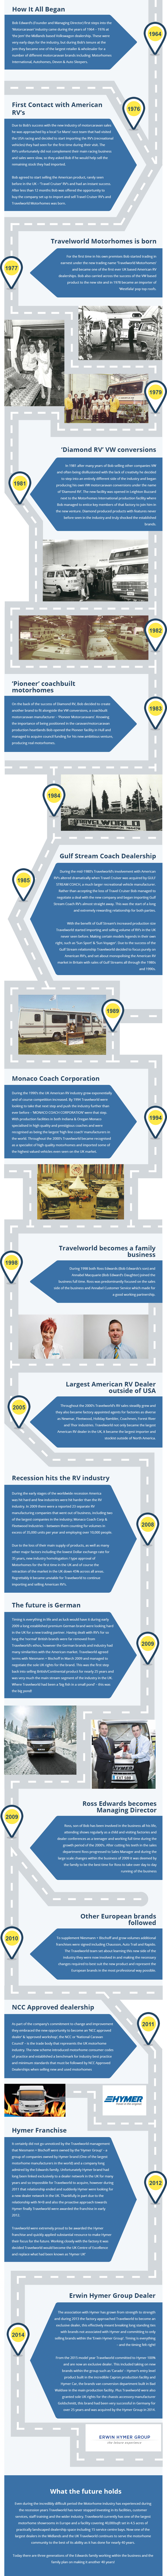 How It All Began - Travelworld Motorhomes History